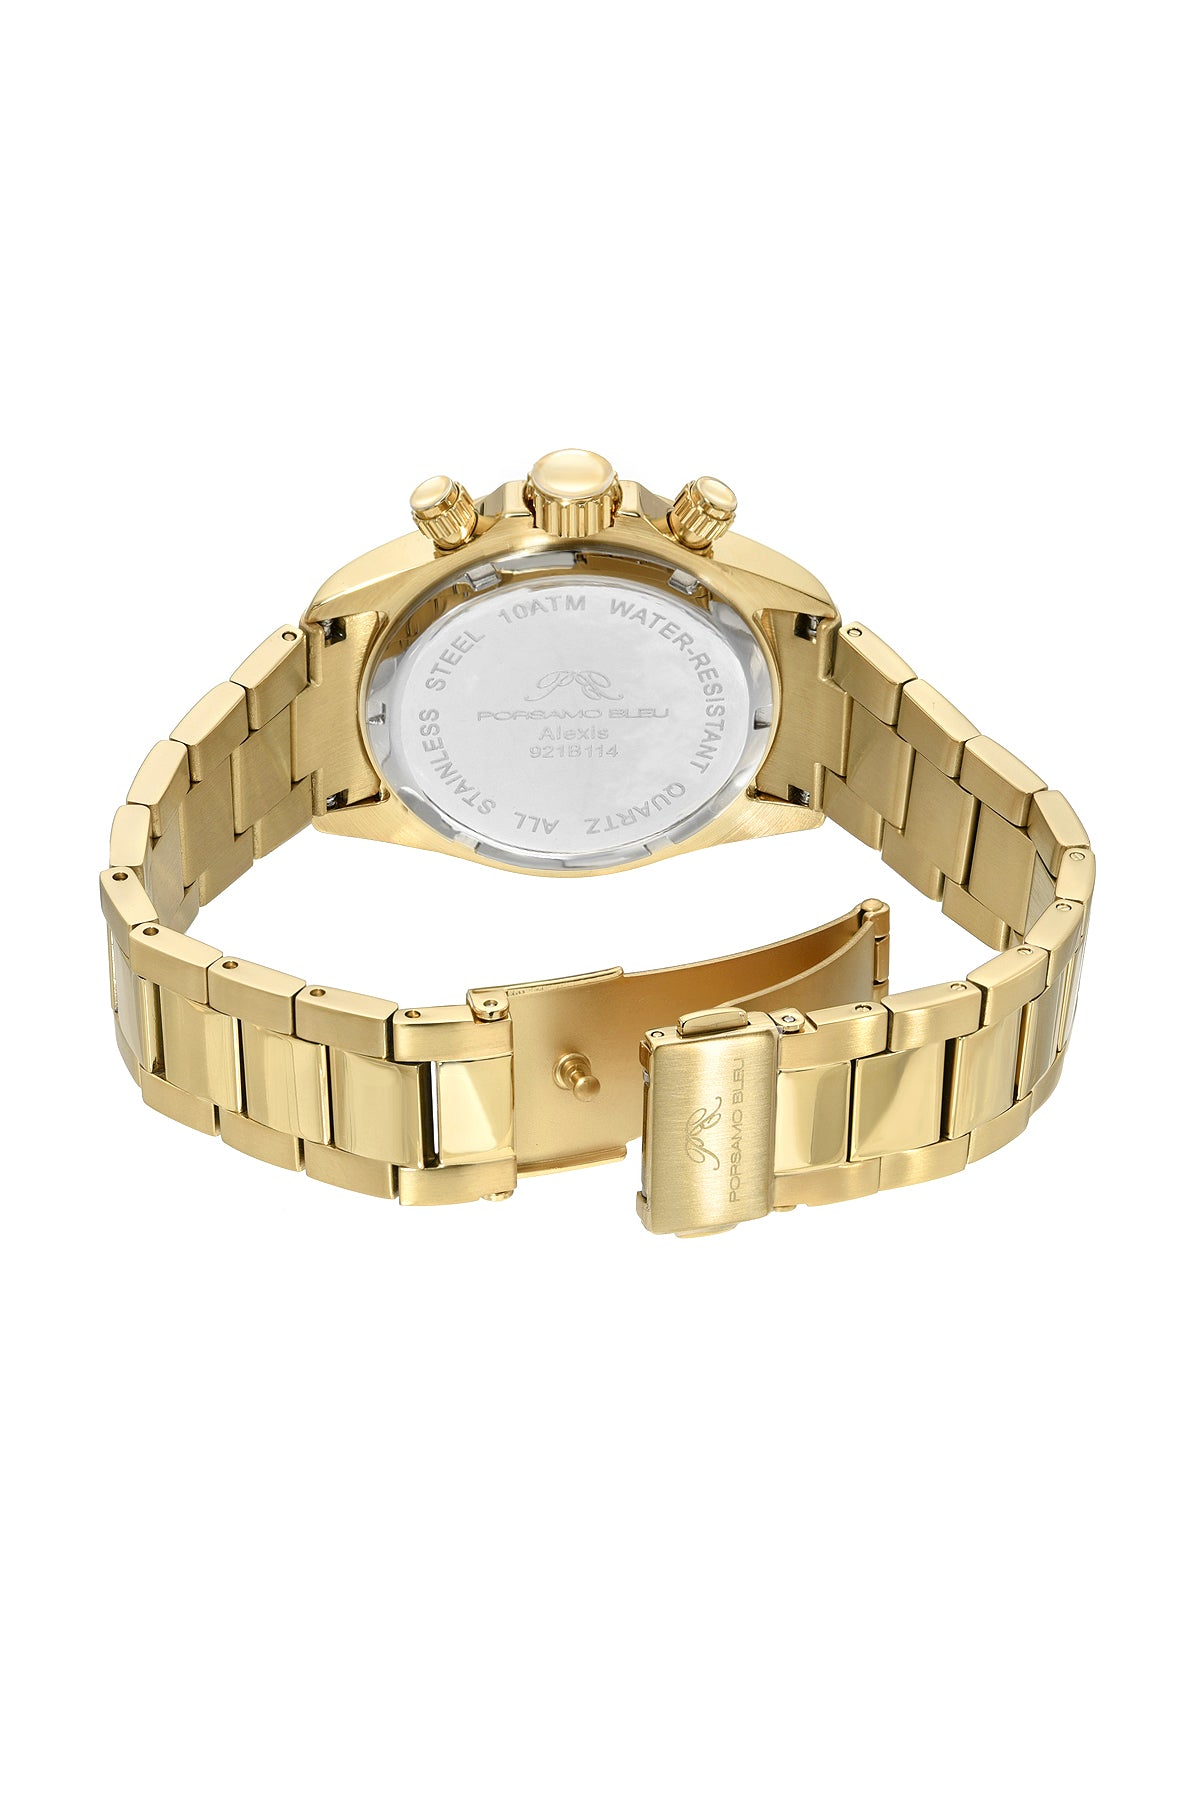 Porsamo Bleu Alexis luxury Women's watch stainless steel, gold, white, 921BALS